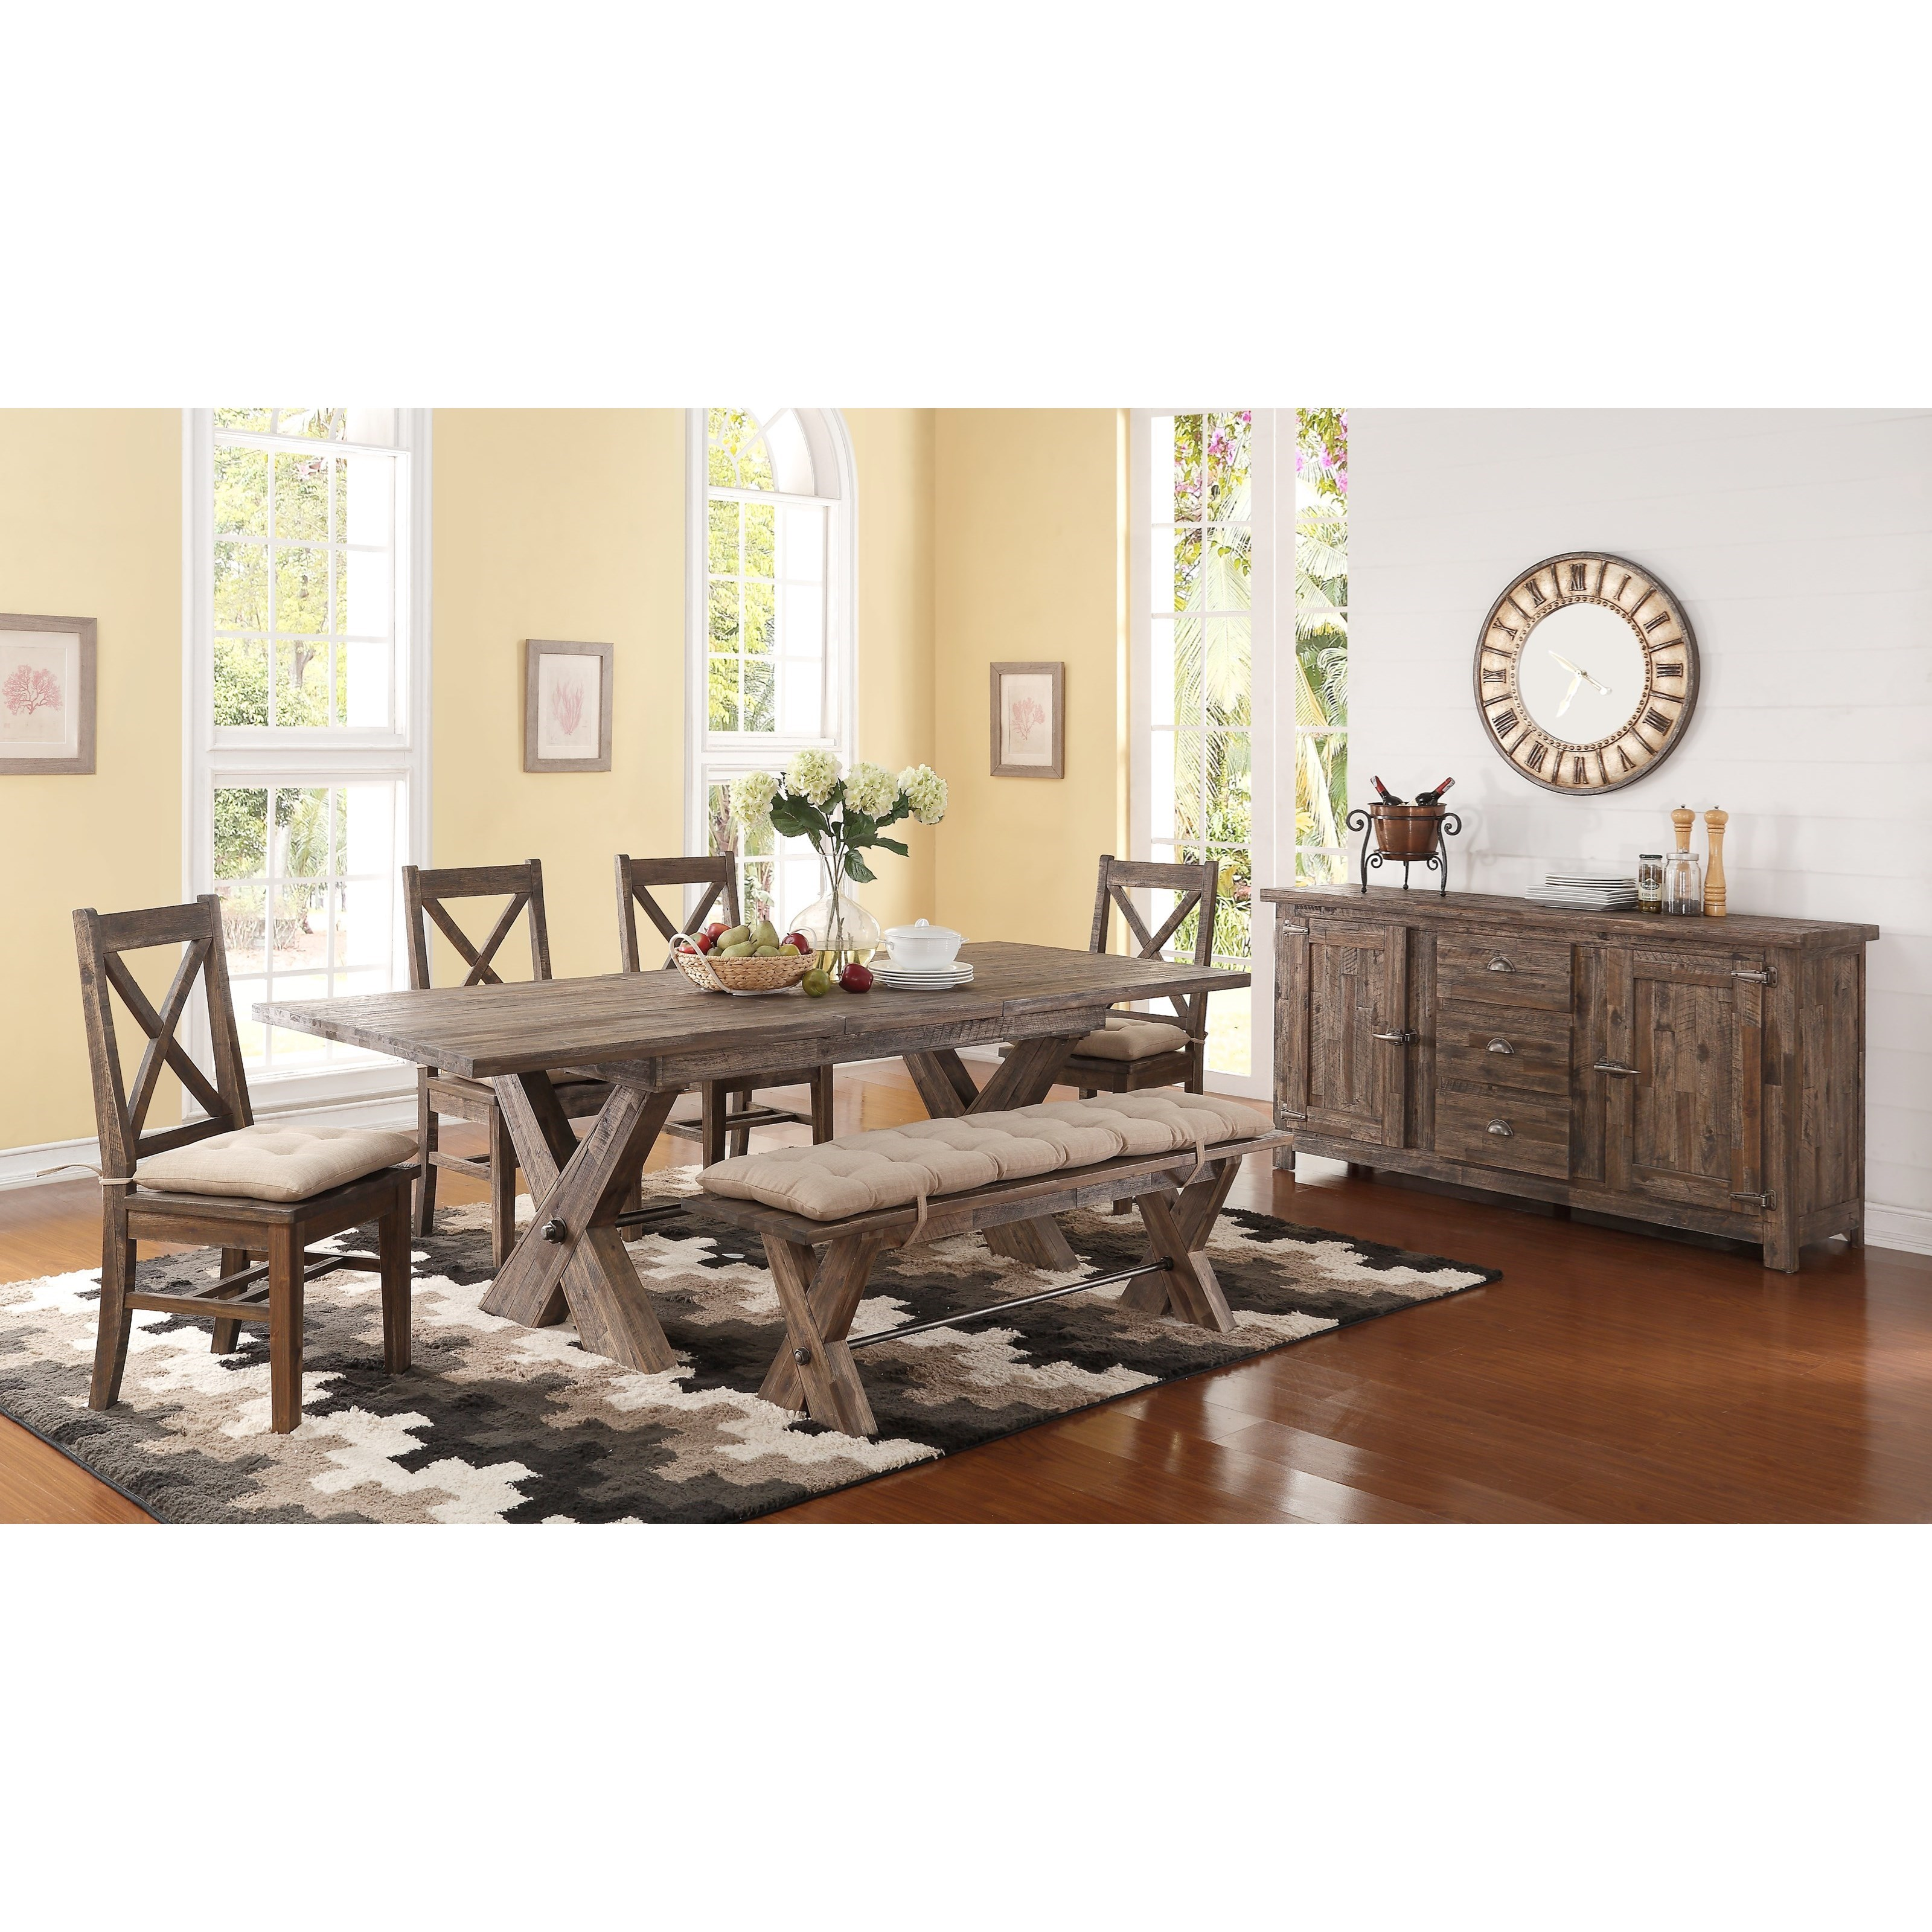 New Classic Tuscany Park Formal Dining Room Group Royal For Flexsteel Wynwood Collection Sonora Casual